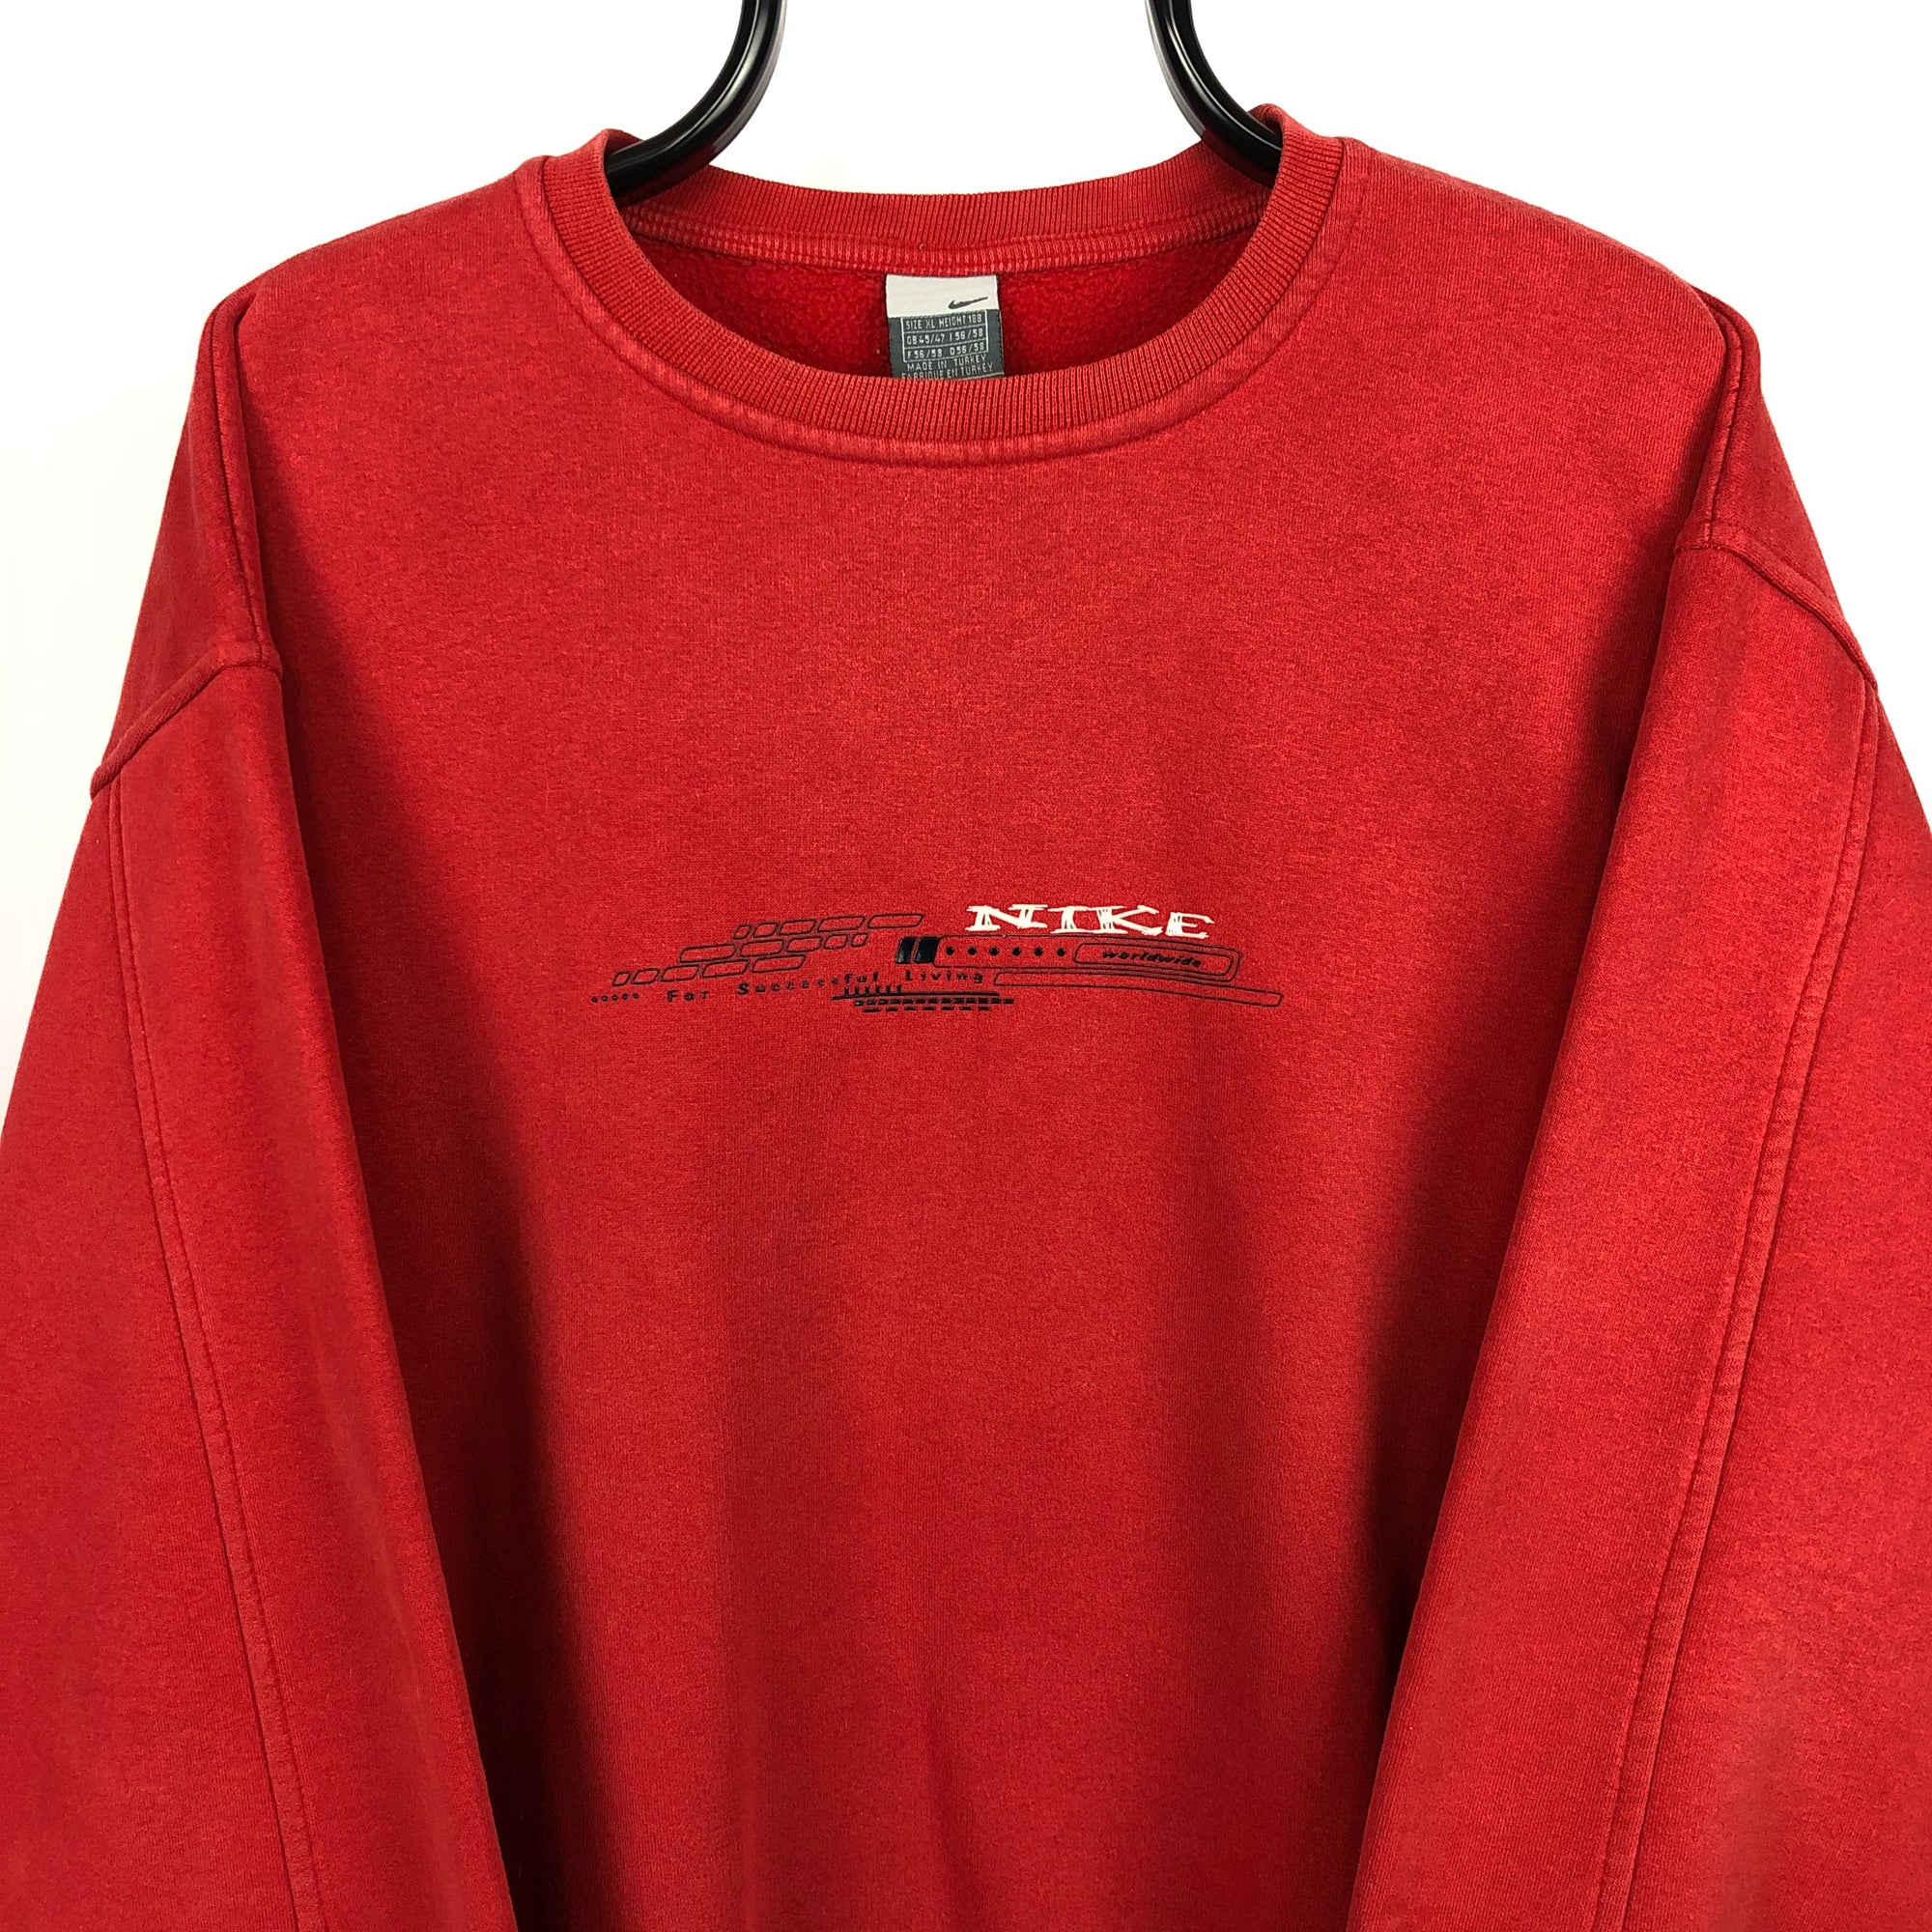 Vintage Nike Graffiti Spellout Sweatshirt in Red - Men's Large/Women's XL